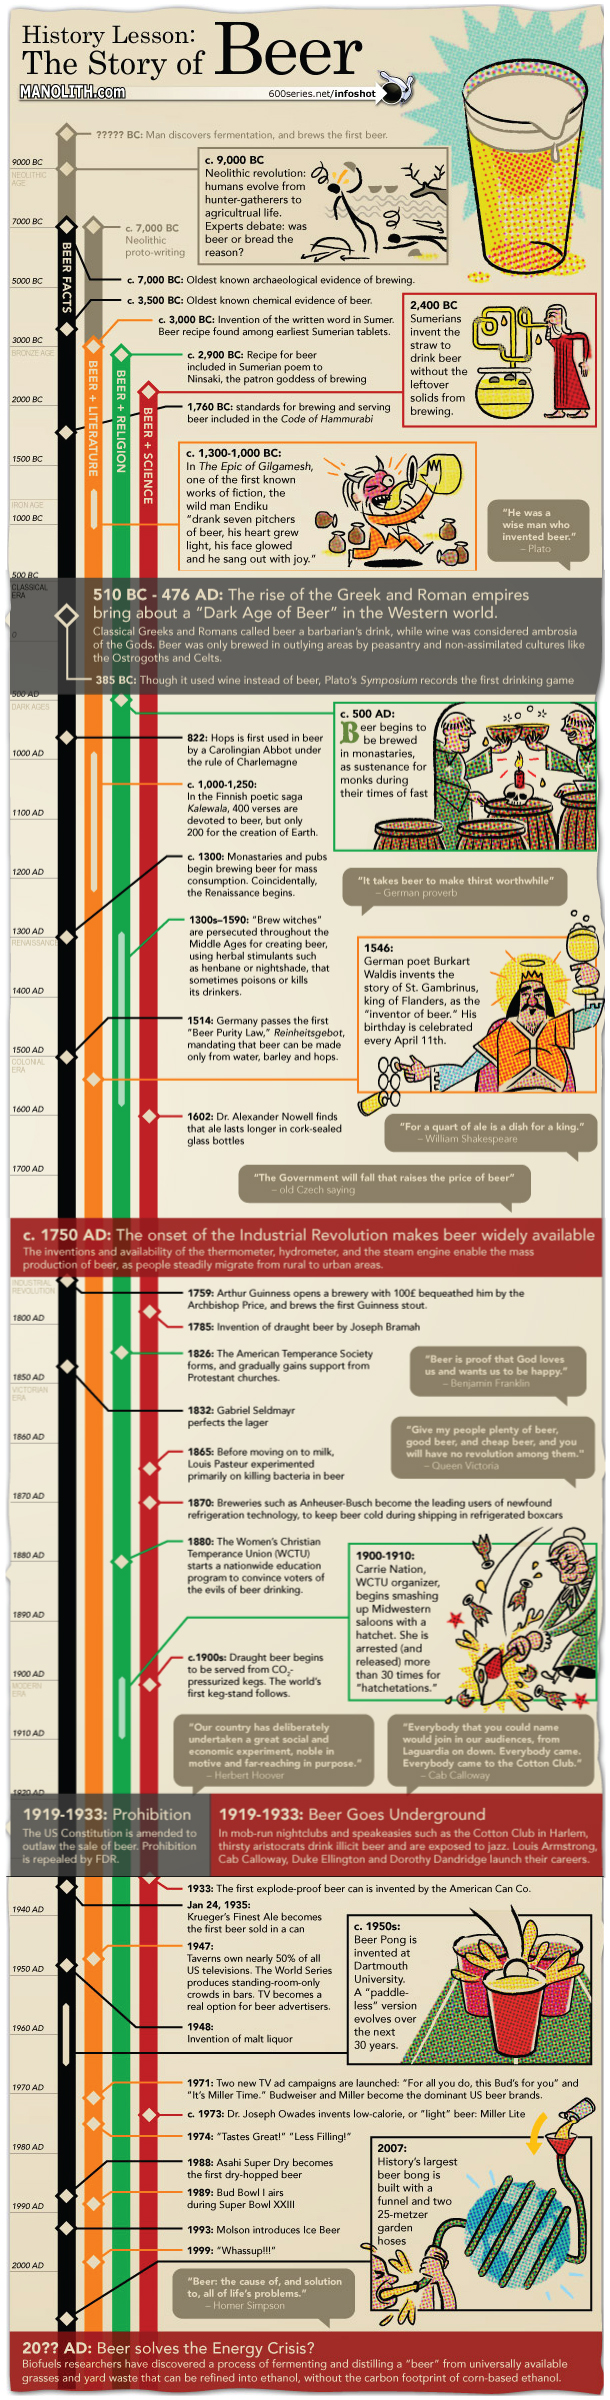 The History of Beer